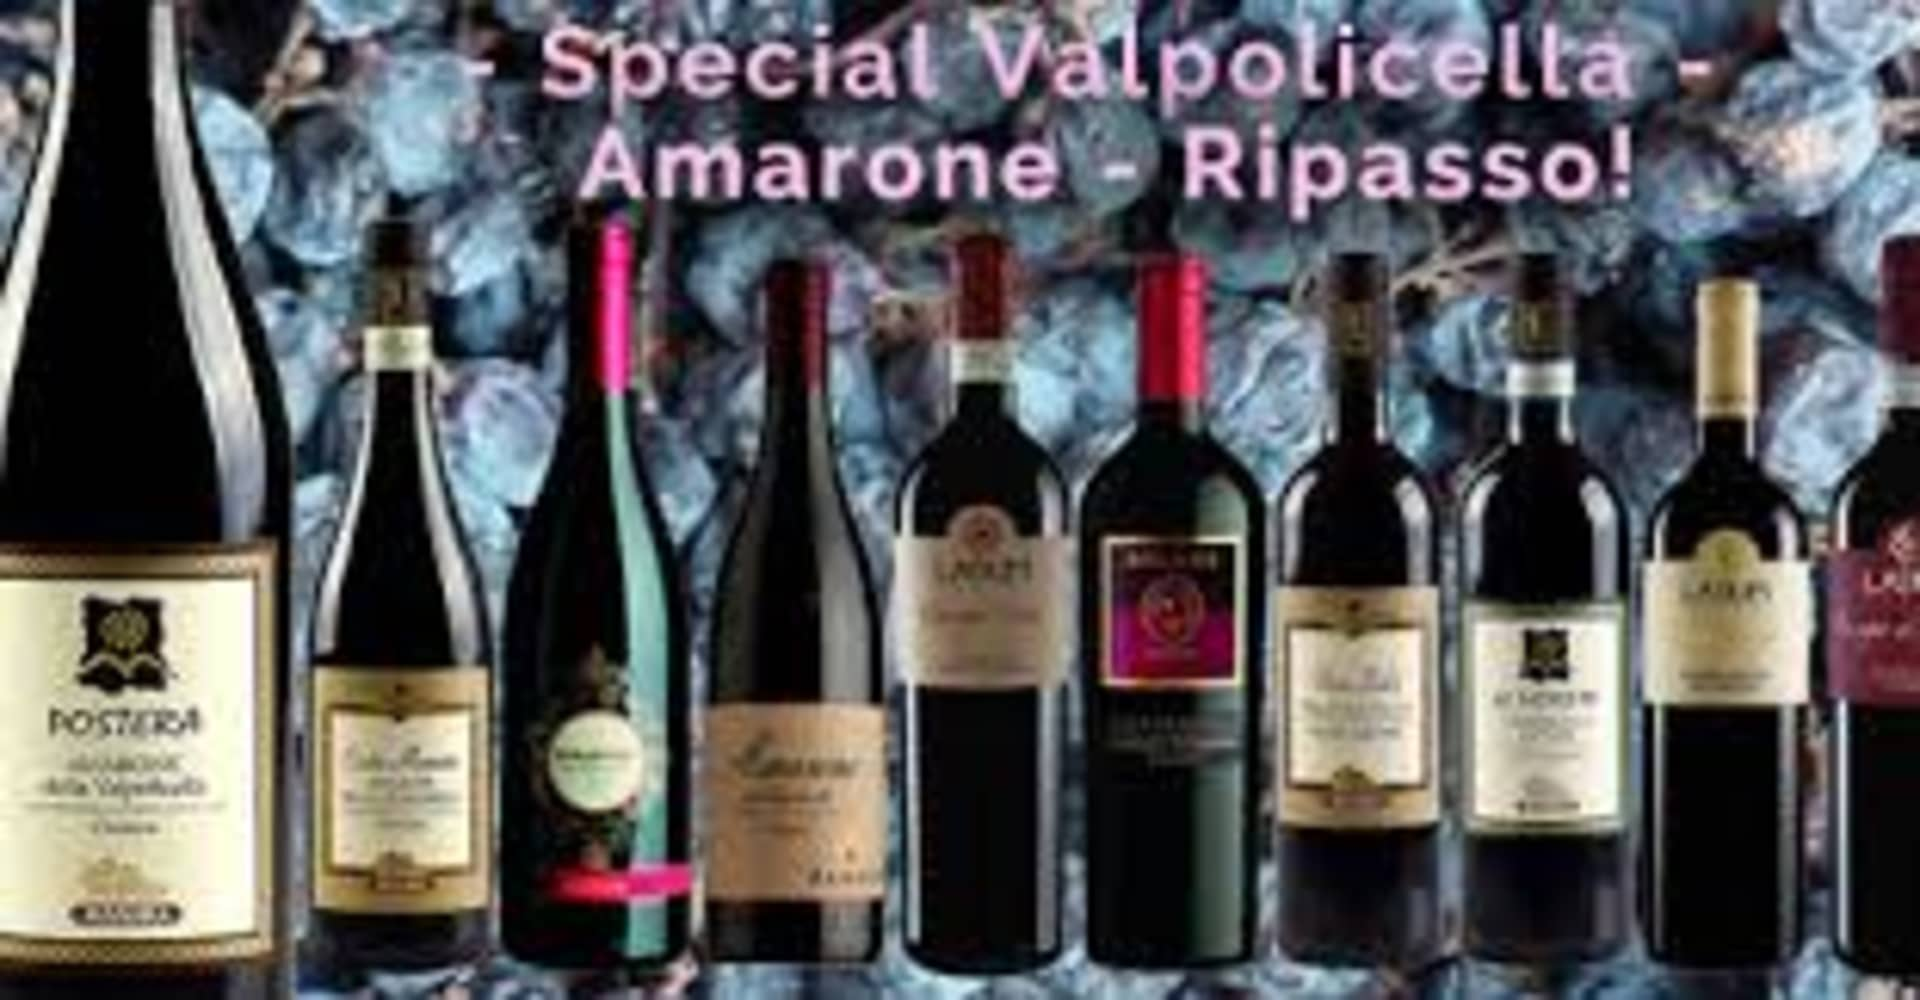 October Pairing Dinner - Veneto Amarone & Ripasso